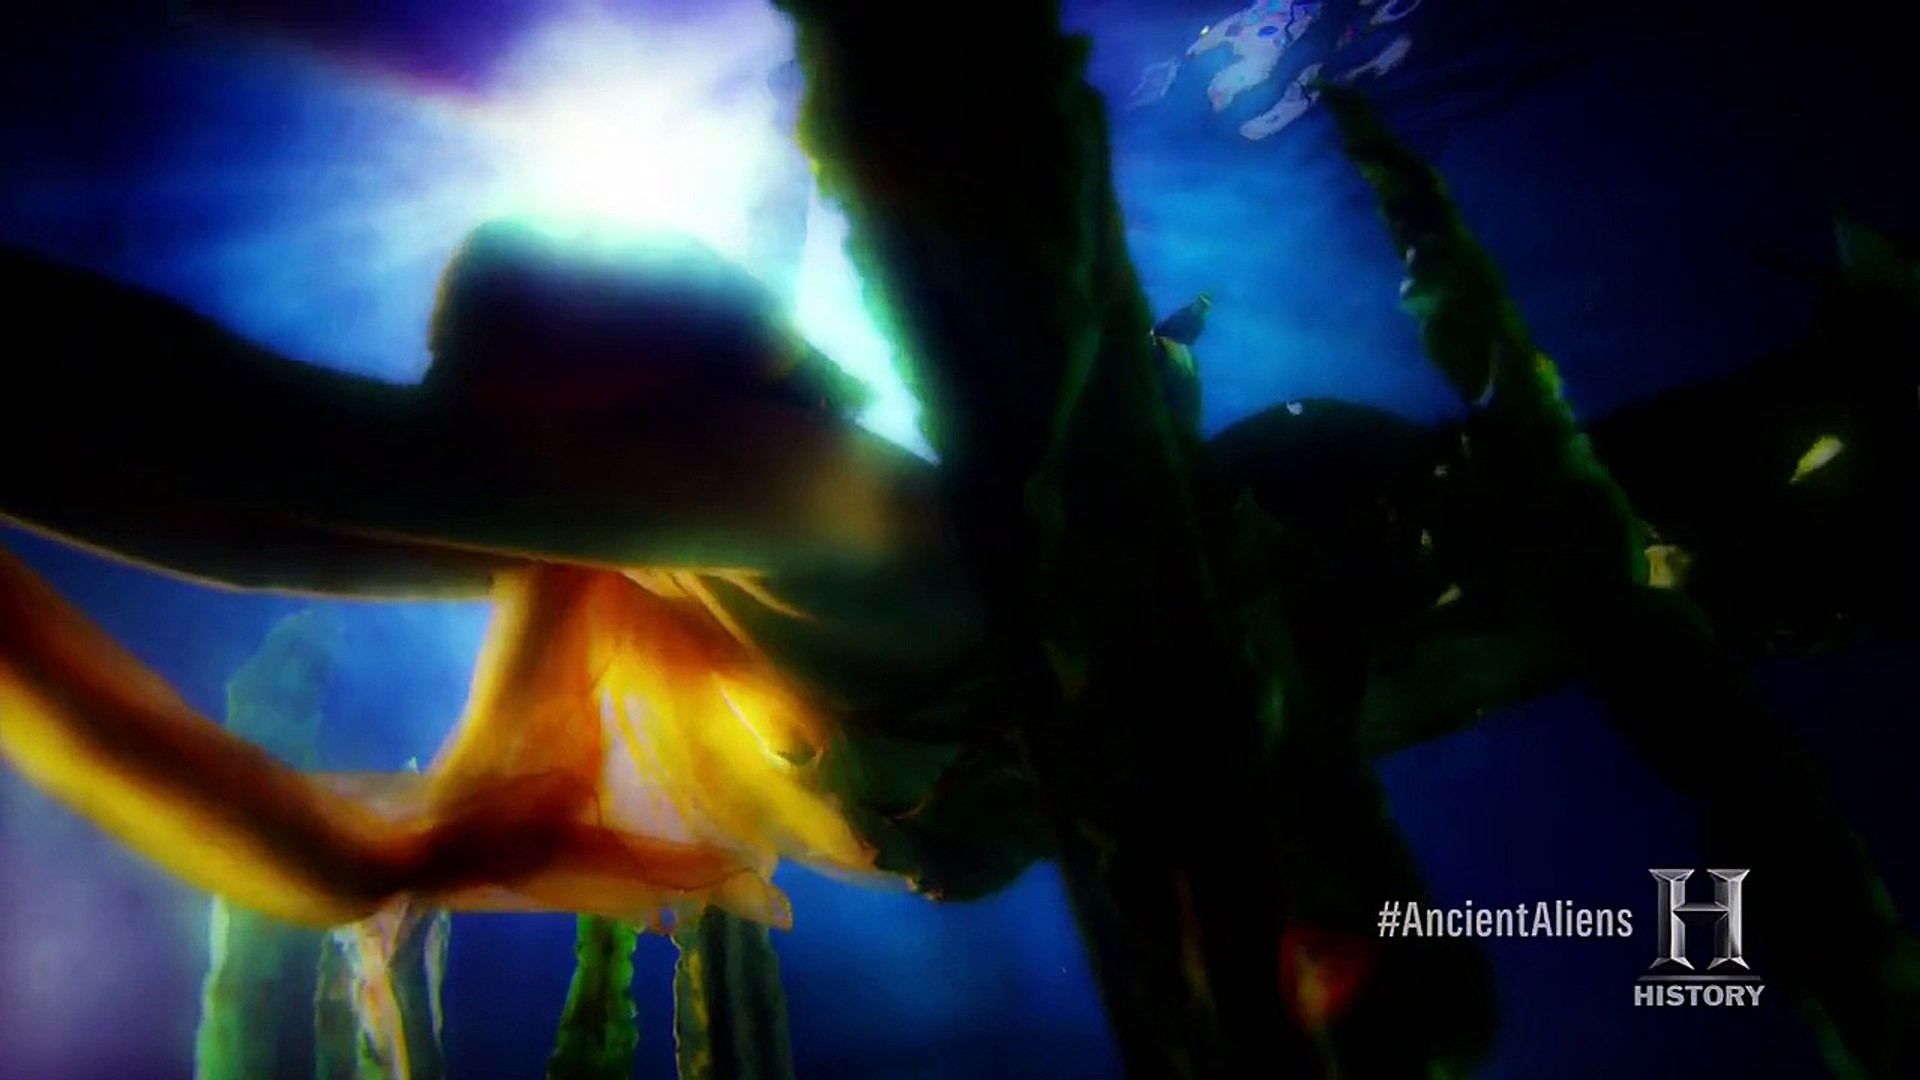 1920x1080 Ancient Aliens - S08 - E07 - Creatures of the Deep